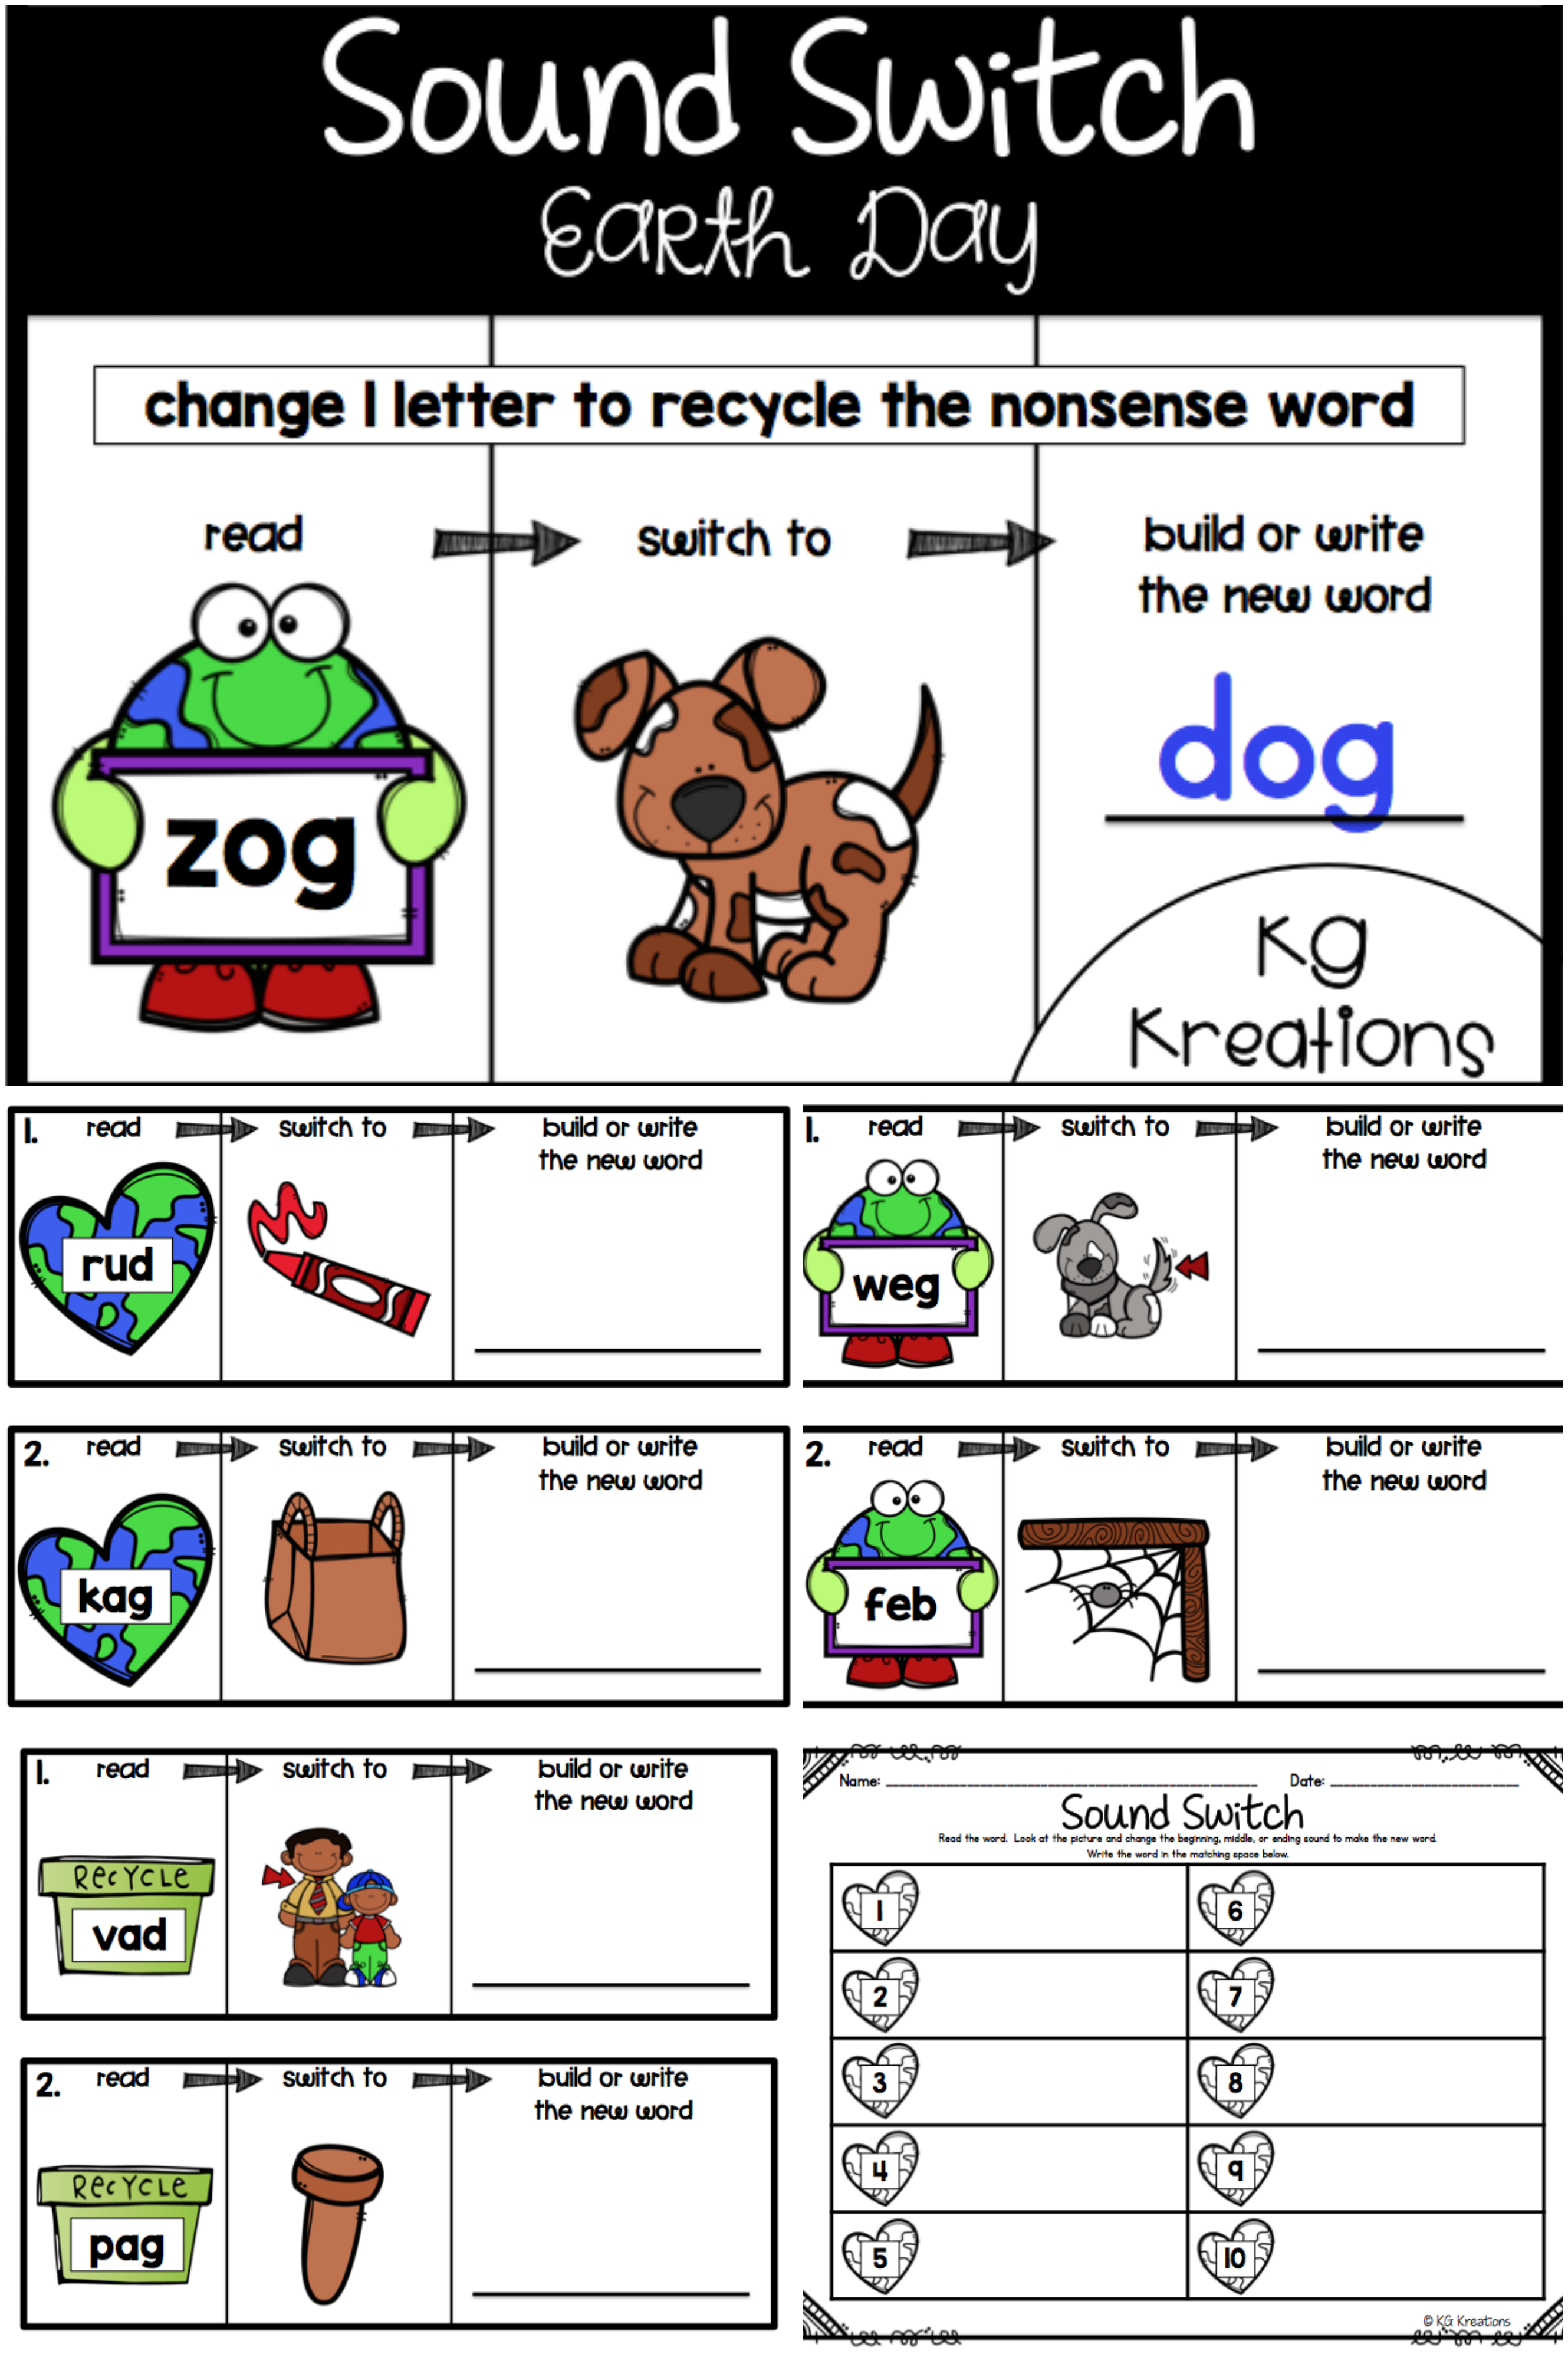 Phoneme Substitution Earth Day Nonsense Words Cvc Words Phoneme Substitution Activities [ 3992 x 2659 Pixel ]